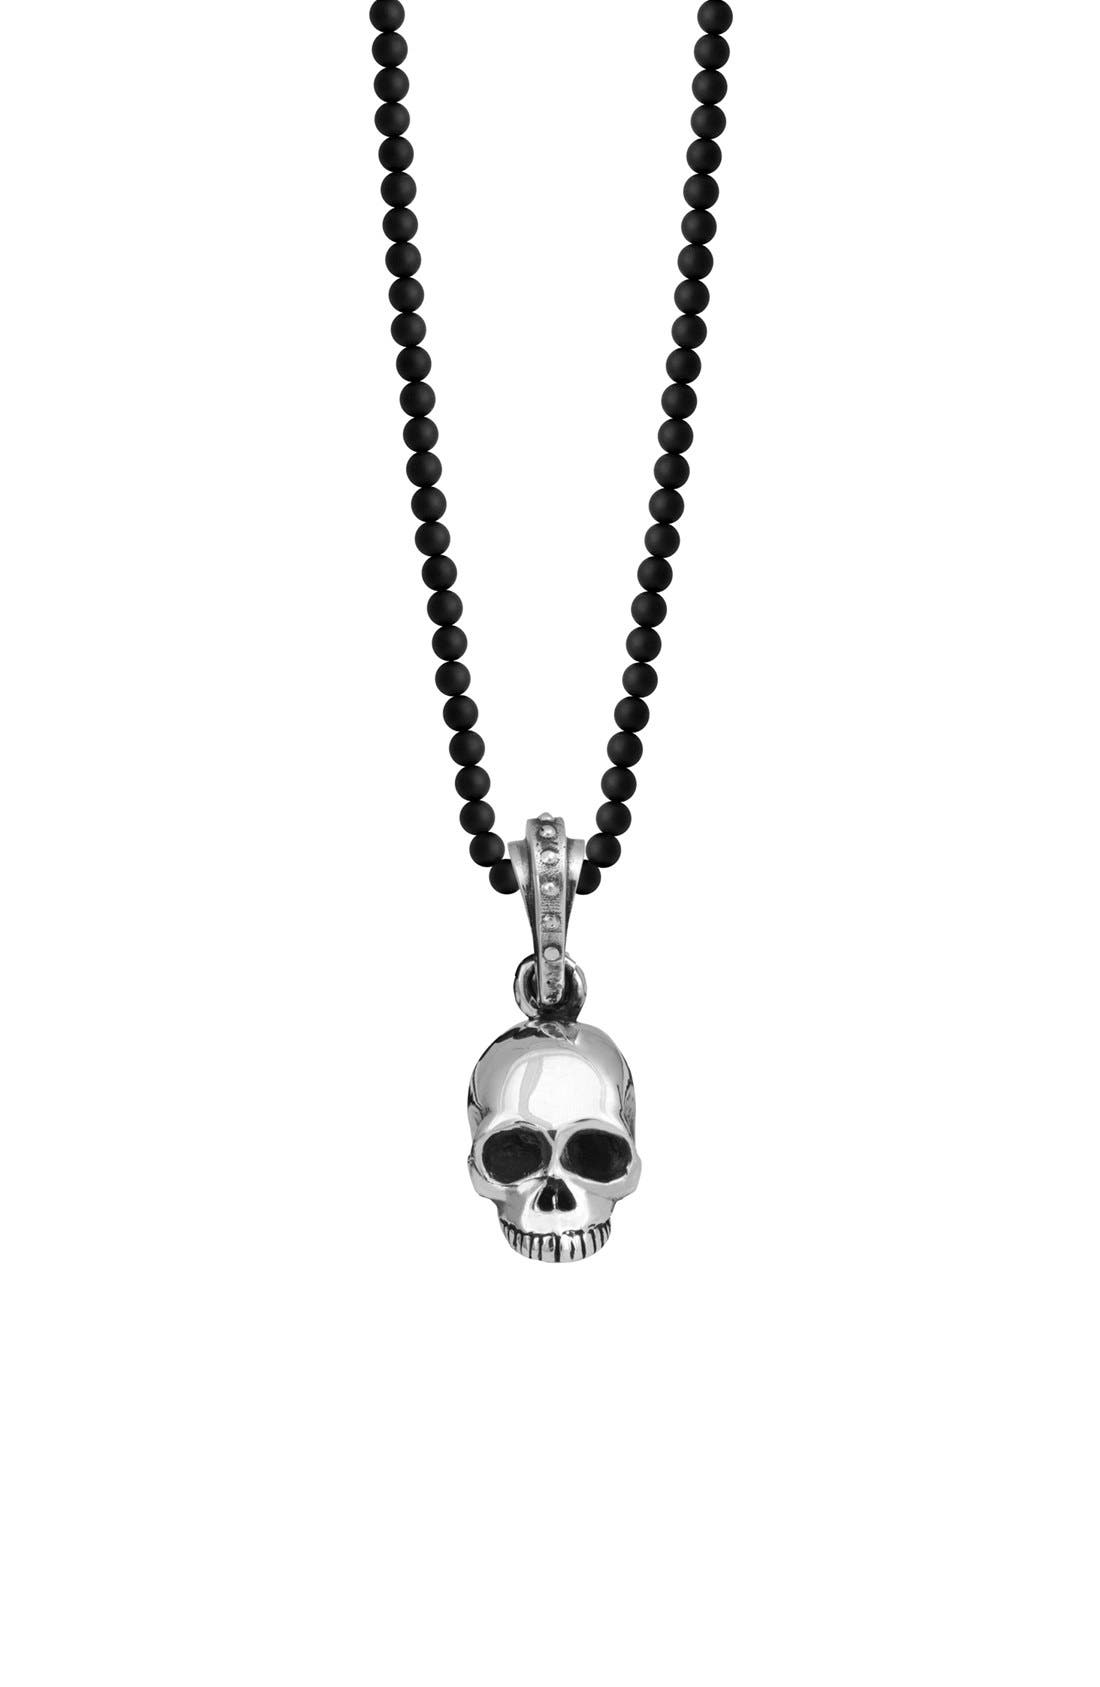 'Hamlet' Sterling Silver & Onyx Skull Pendant Necklace,                             Main thumbnail 1, color,                             Silver/ Black